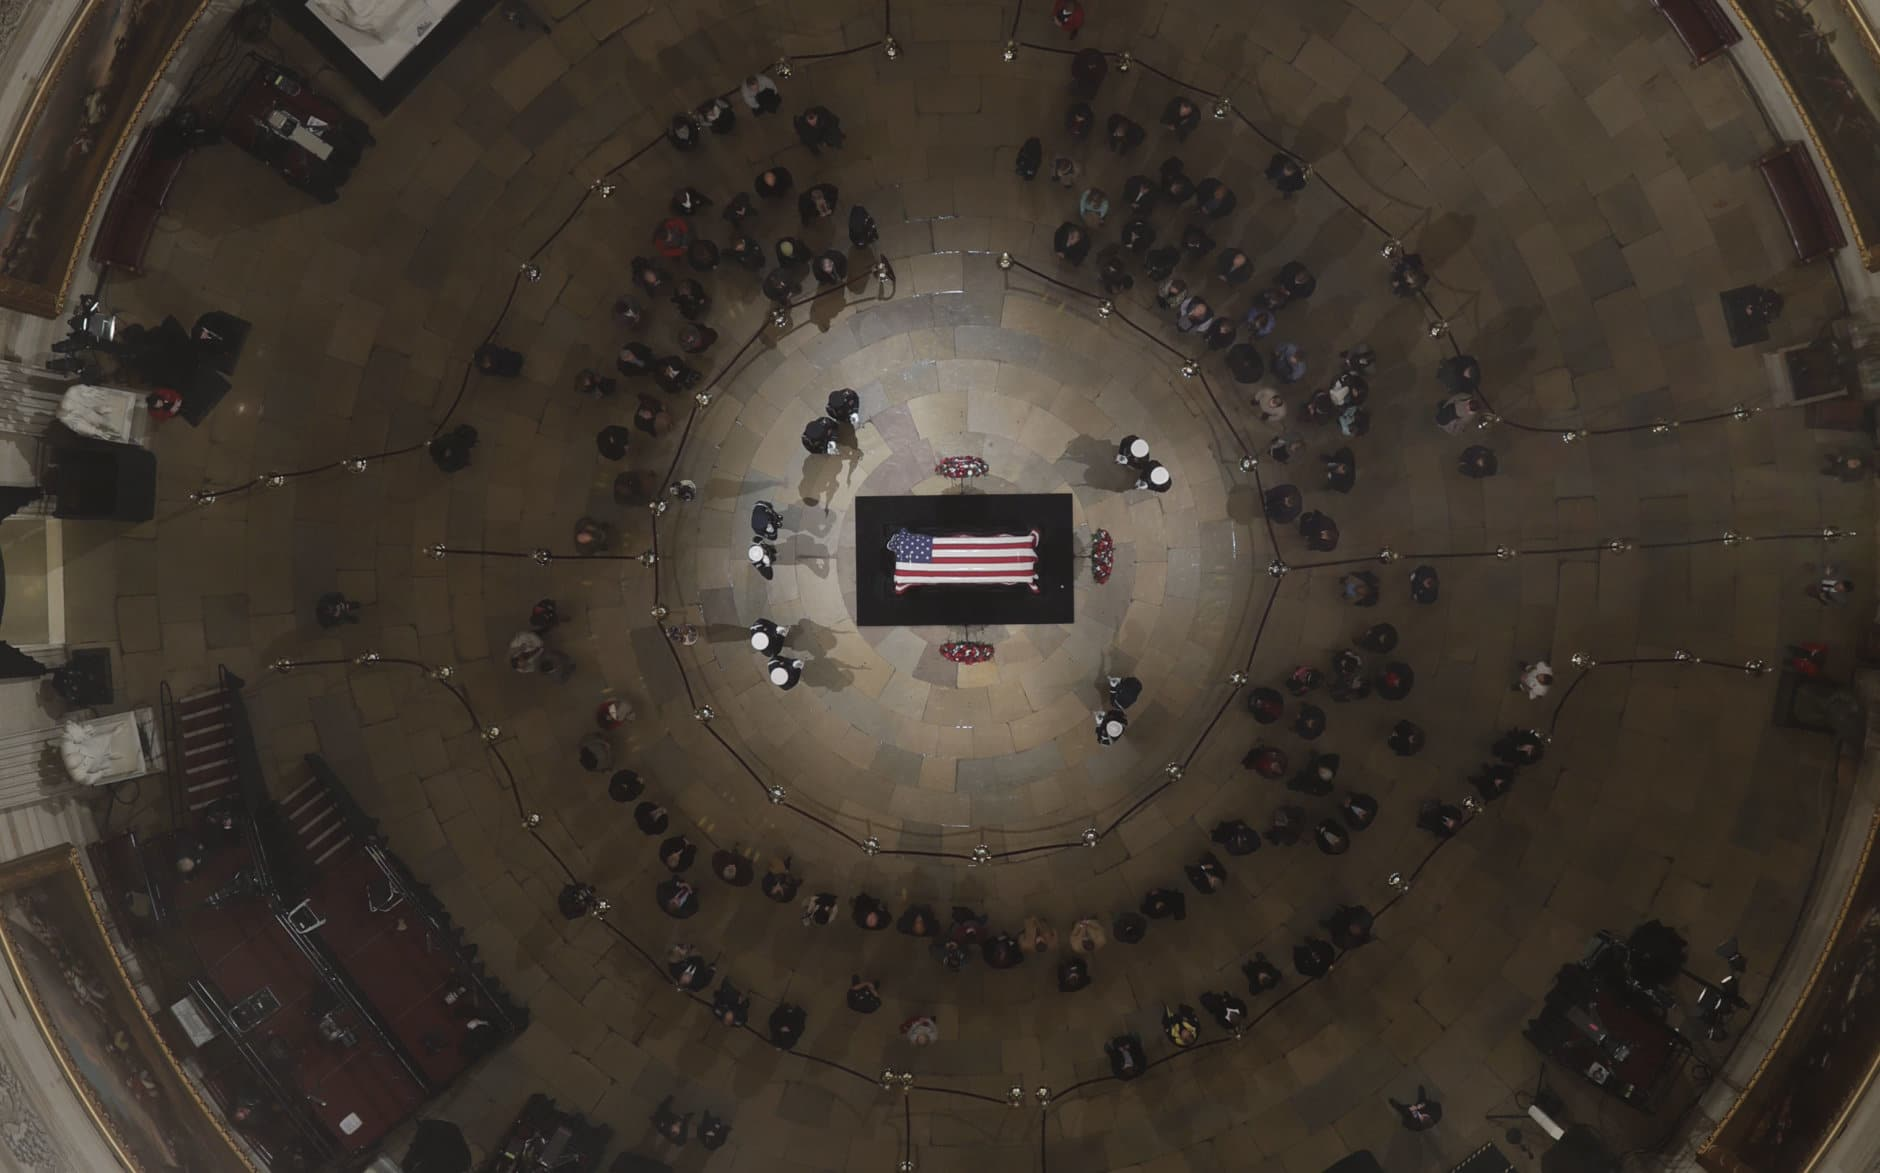 Former President George H. W. Bush lies in state in the U.S. Capitol Rotunda Wednesday, Dec. 5, 2018, in Washington. (Pool photo by Morry Gash via AP)